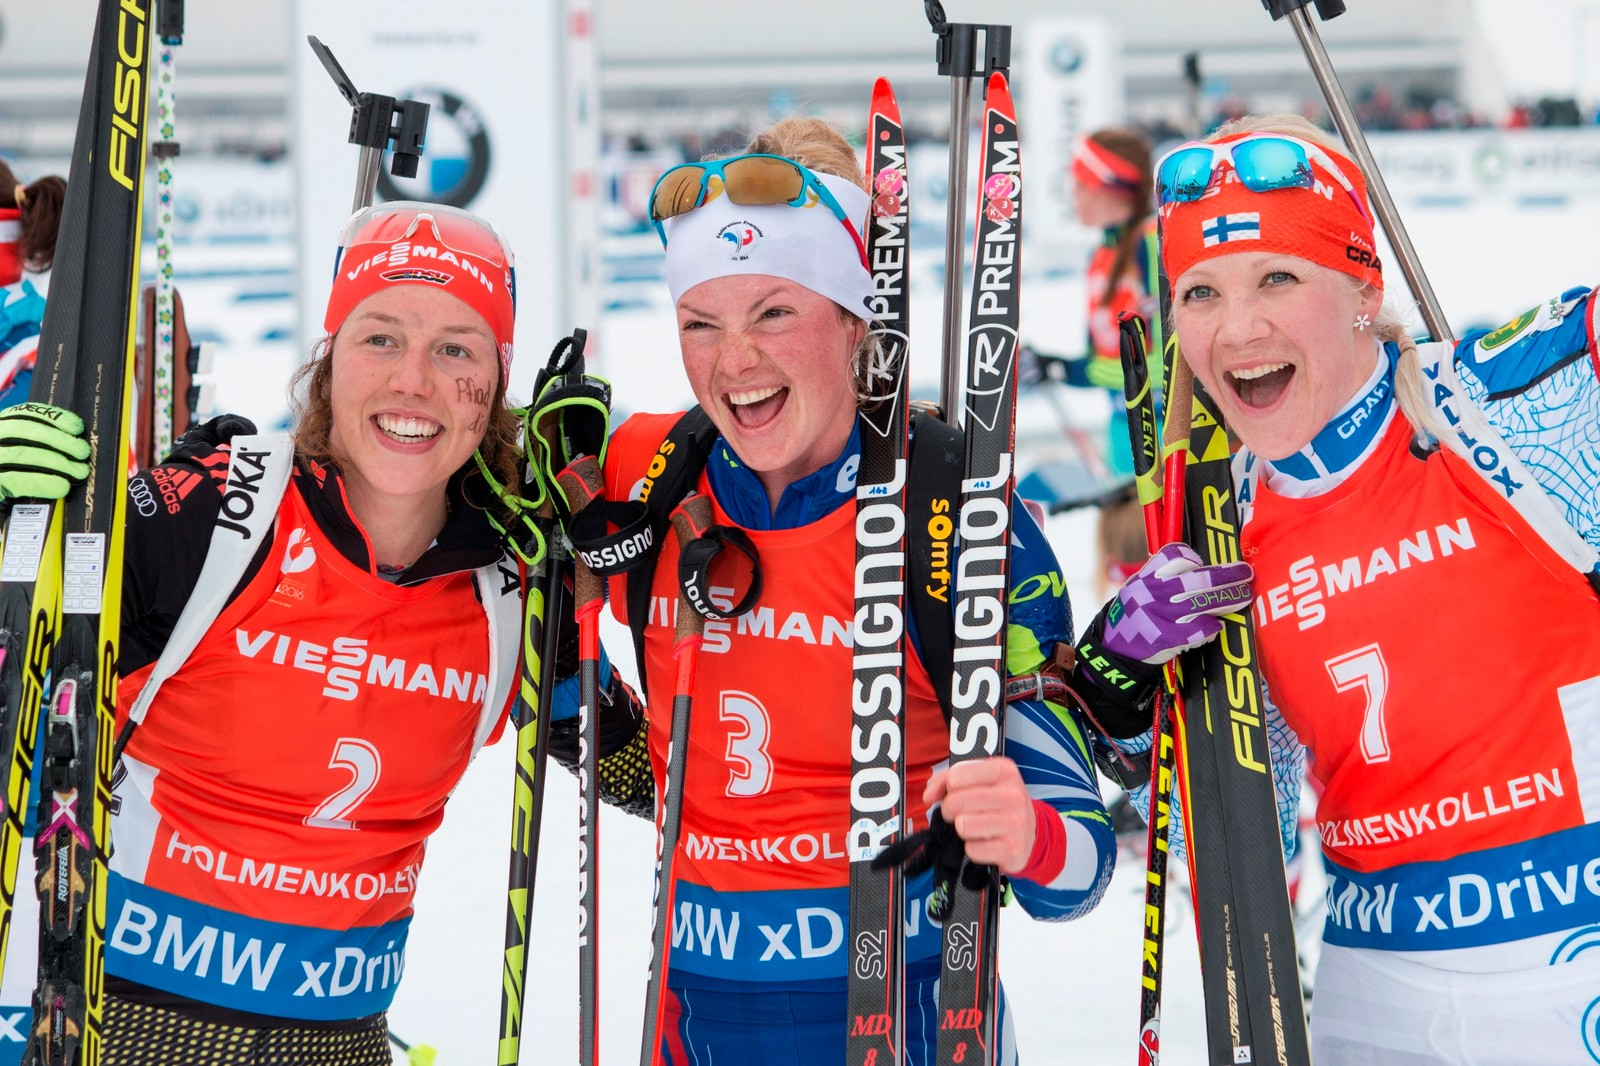 VM skiskyting Oslo 2016 Marie Dorin Habert (FRA) won the gold medal in the 12,5 km pursuit event in Holmenkollen 13 . March. Laura Dahlmeier (GER, left) won the silver medal and Kaisa Makarainen (FIN, right) the bronze.